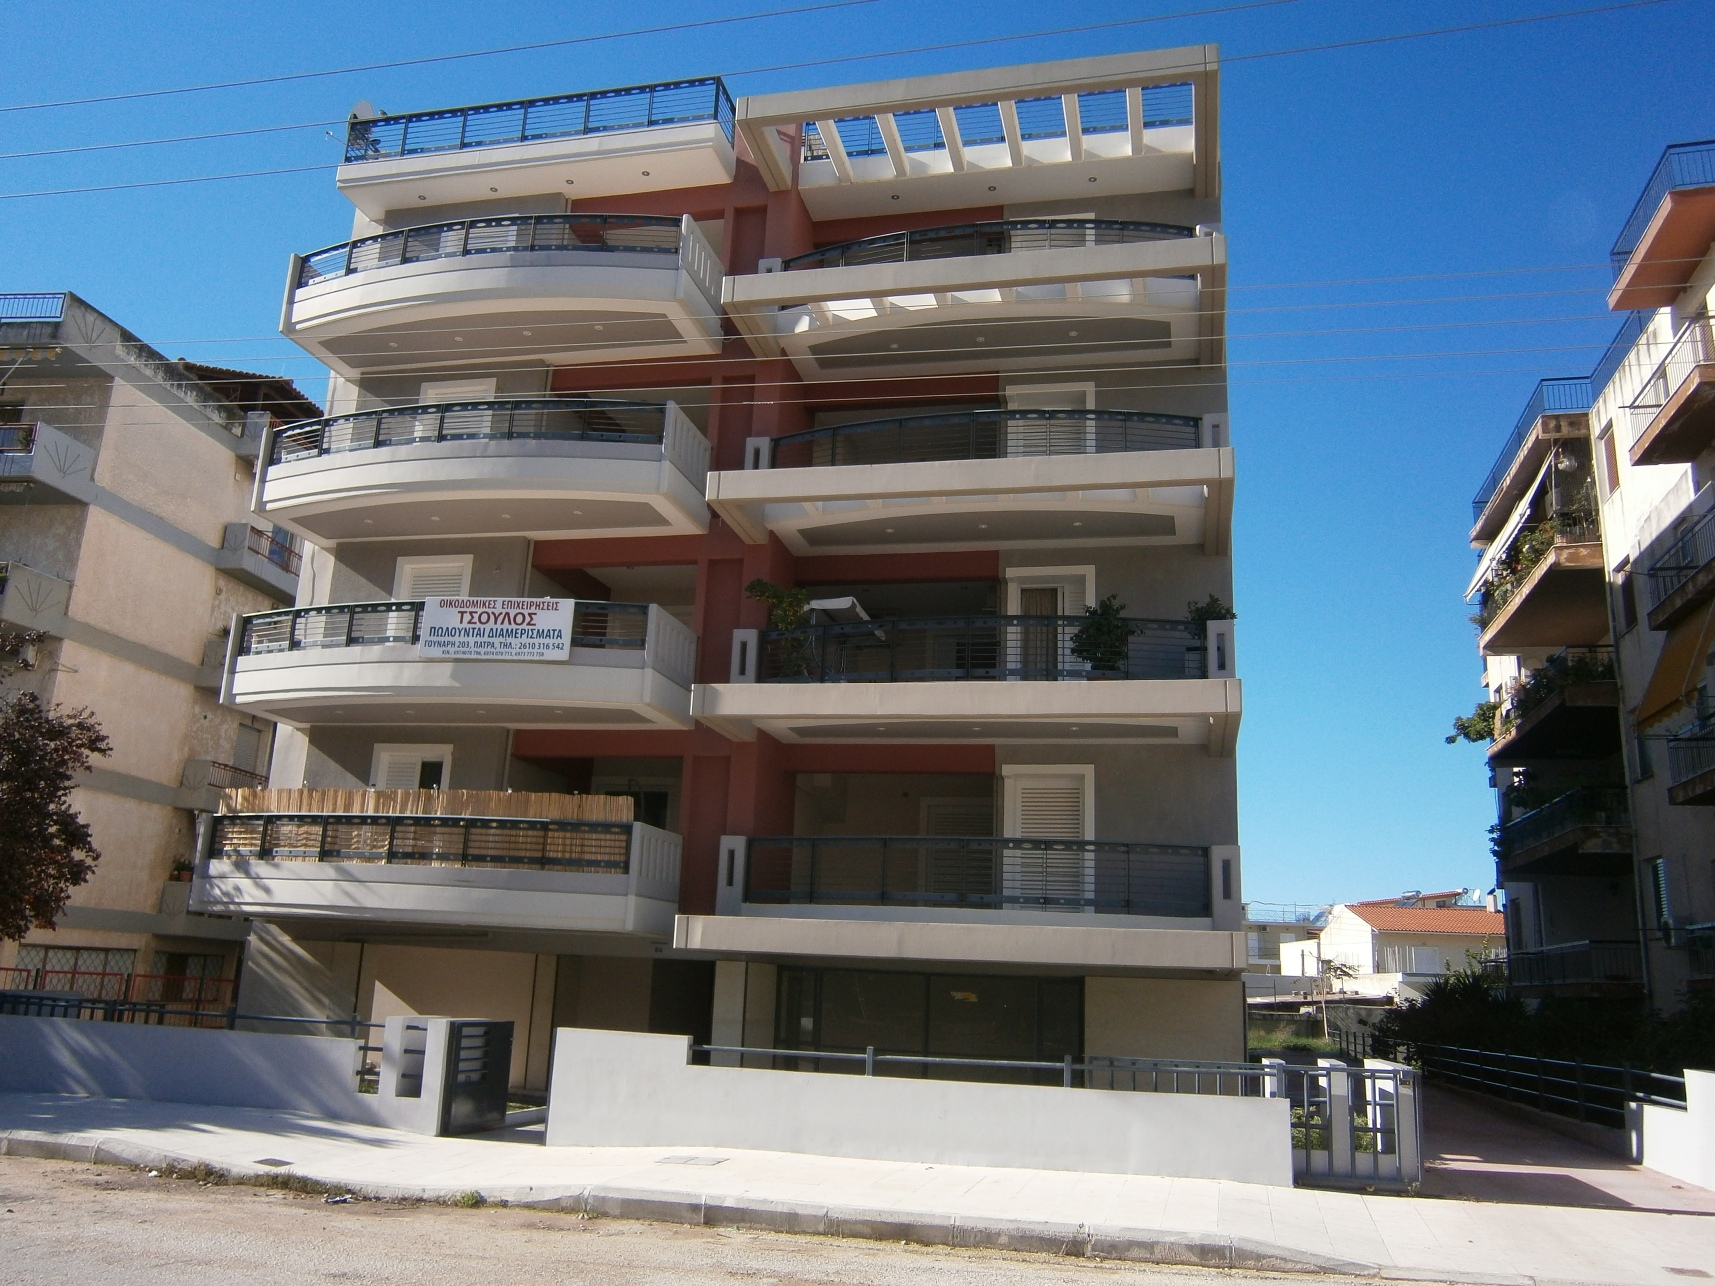 Patras new 4 storey apartment building with ground floor garages and basement storage rooms